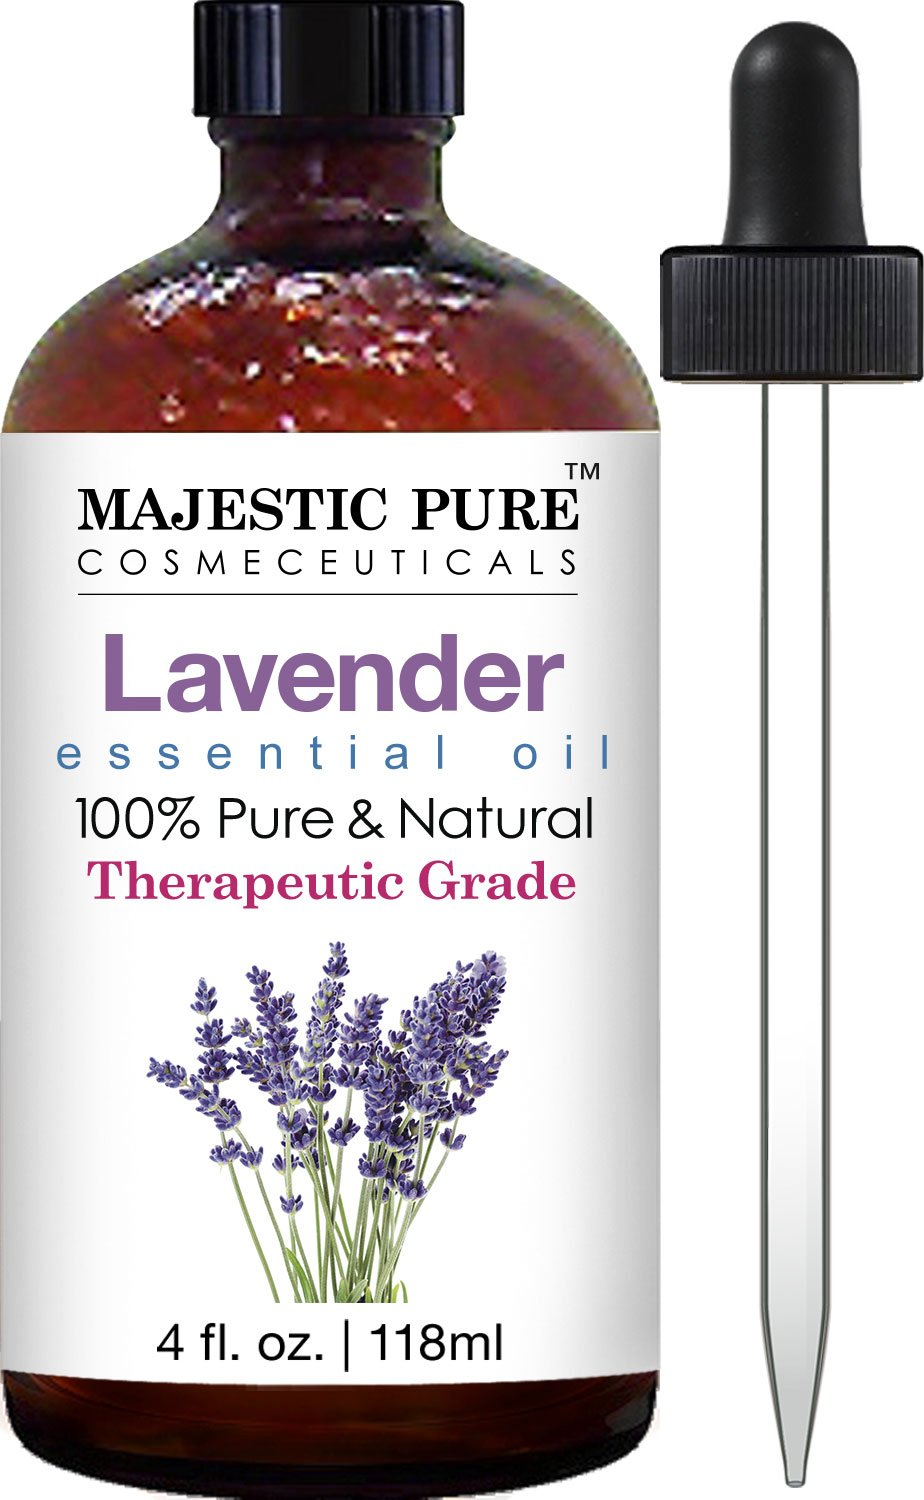 Medication discount coupons bvgg - Majestic Pure Lavender Essential Oil Therapeutic Grade